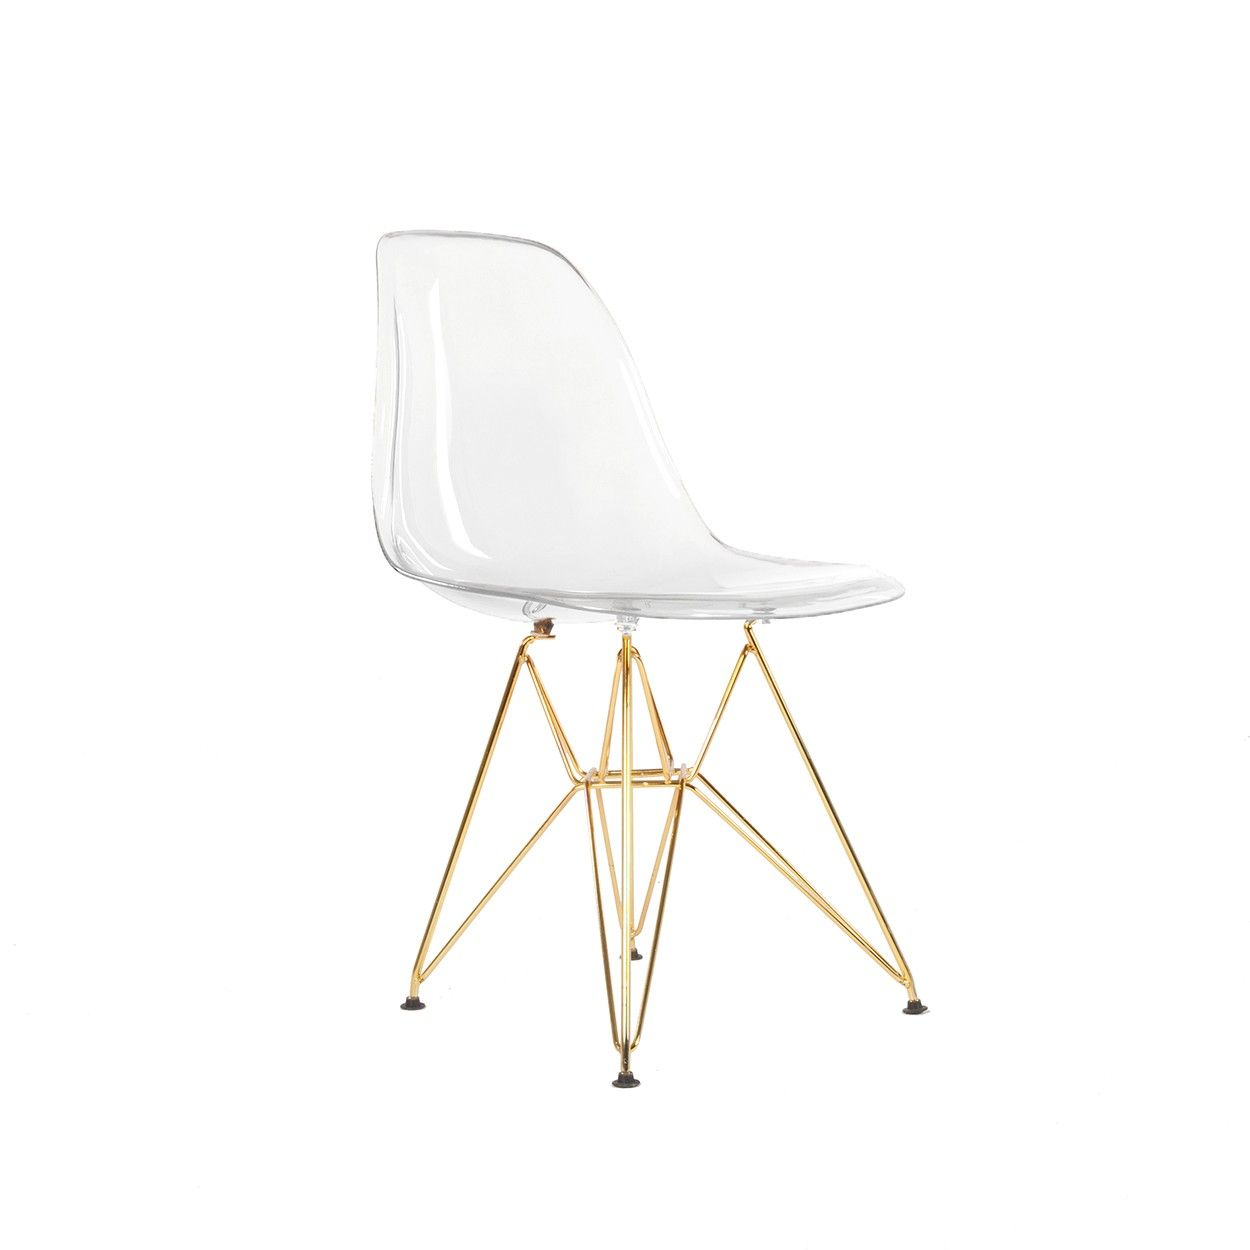 Plastic chair metal legs - Dsr Plastic Molded Eiffel Dining Chair Glossy Gold Legs And Clear Seat